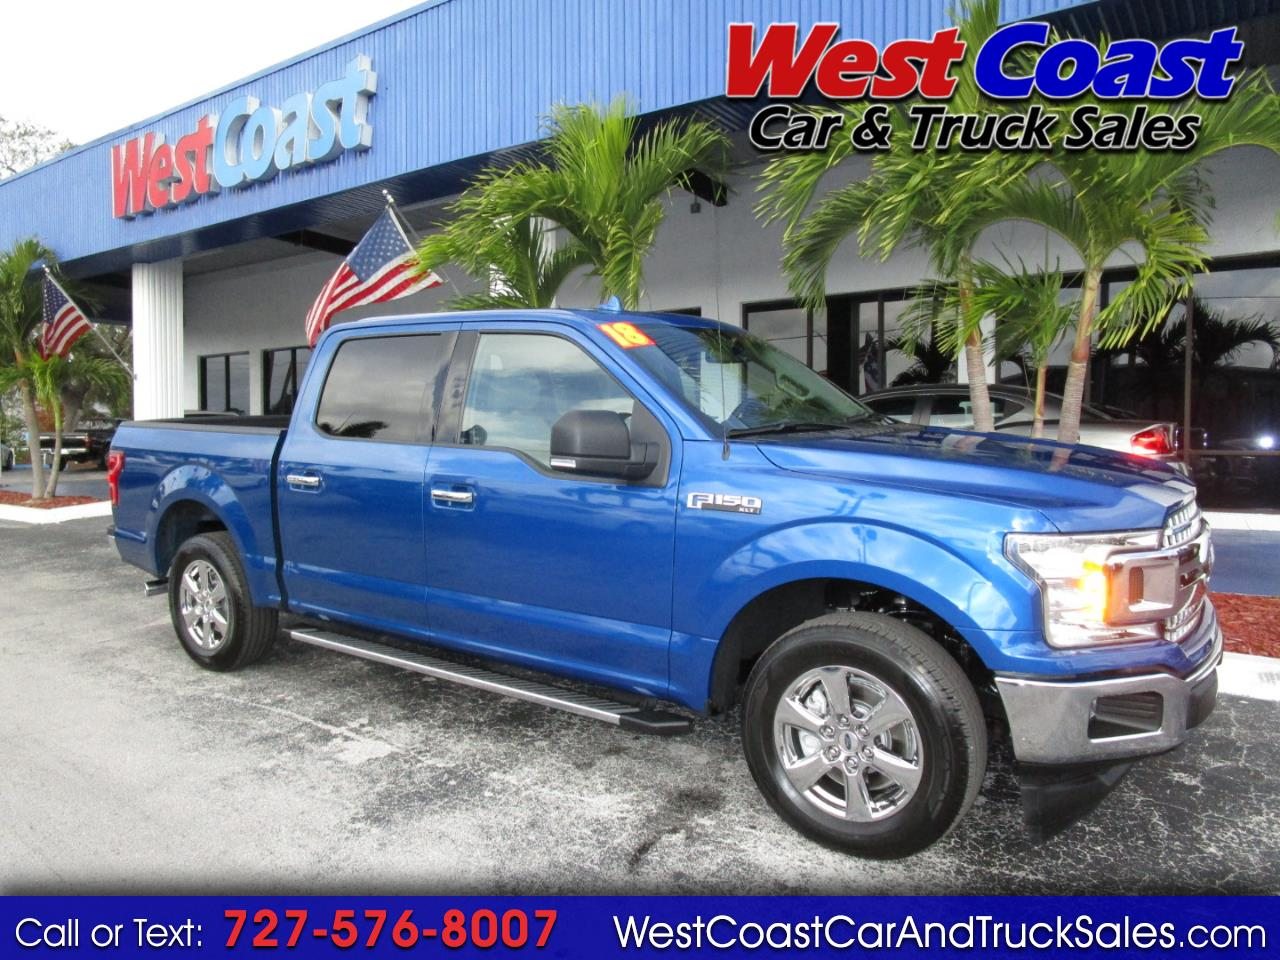 Buy Here Pay Here Car Lots Pinellas Park Fl >> Buy Here Pay Here Cars For Sale Pinellas Park Fl 33781 West Coast